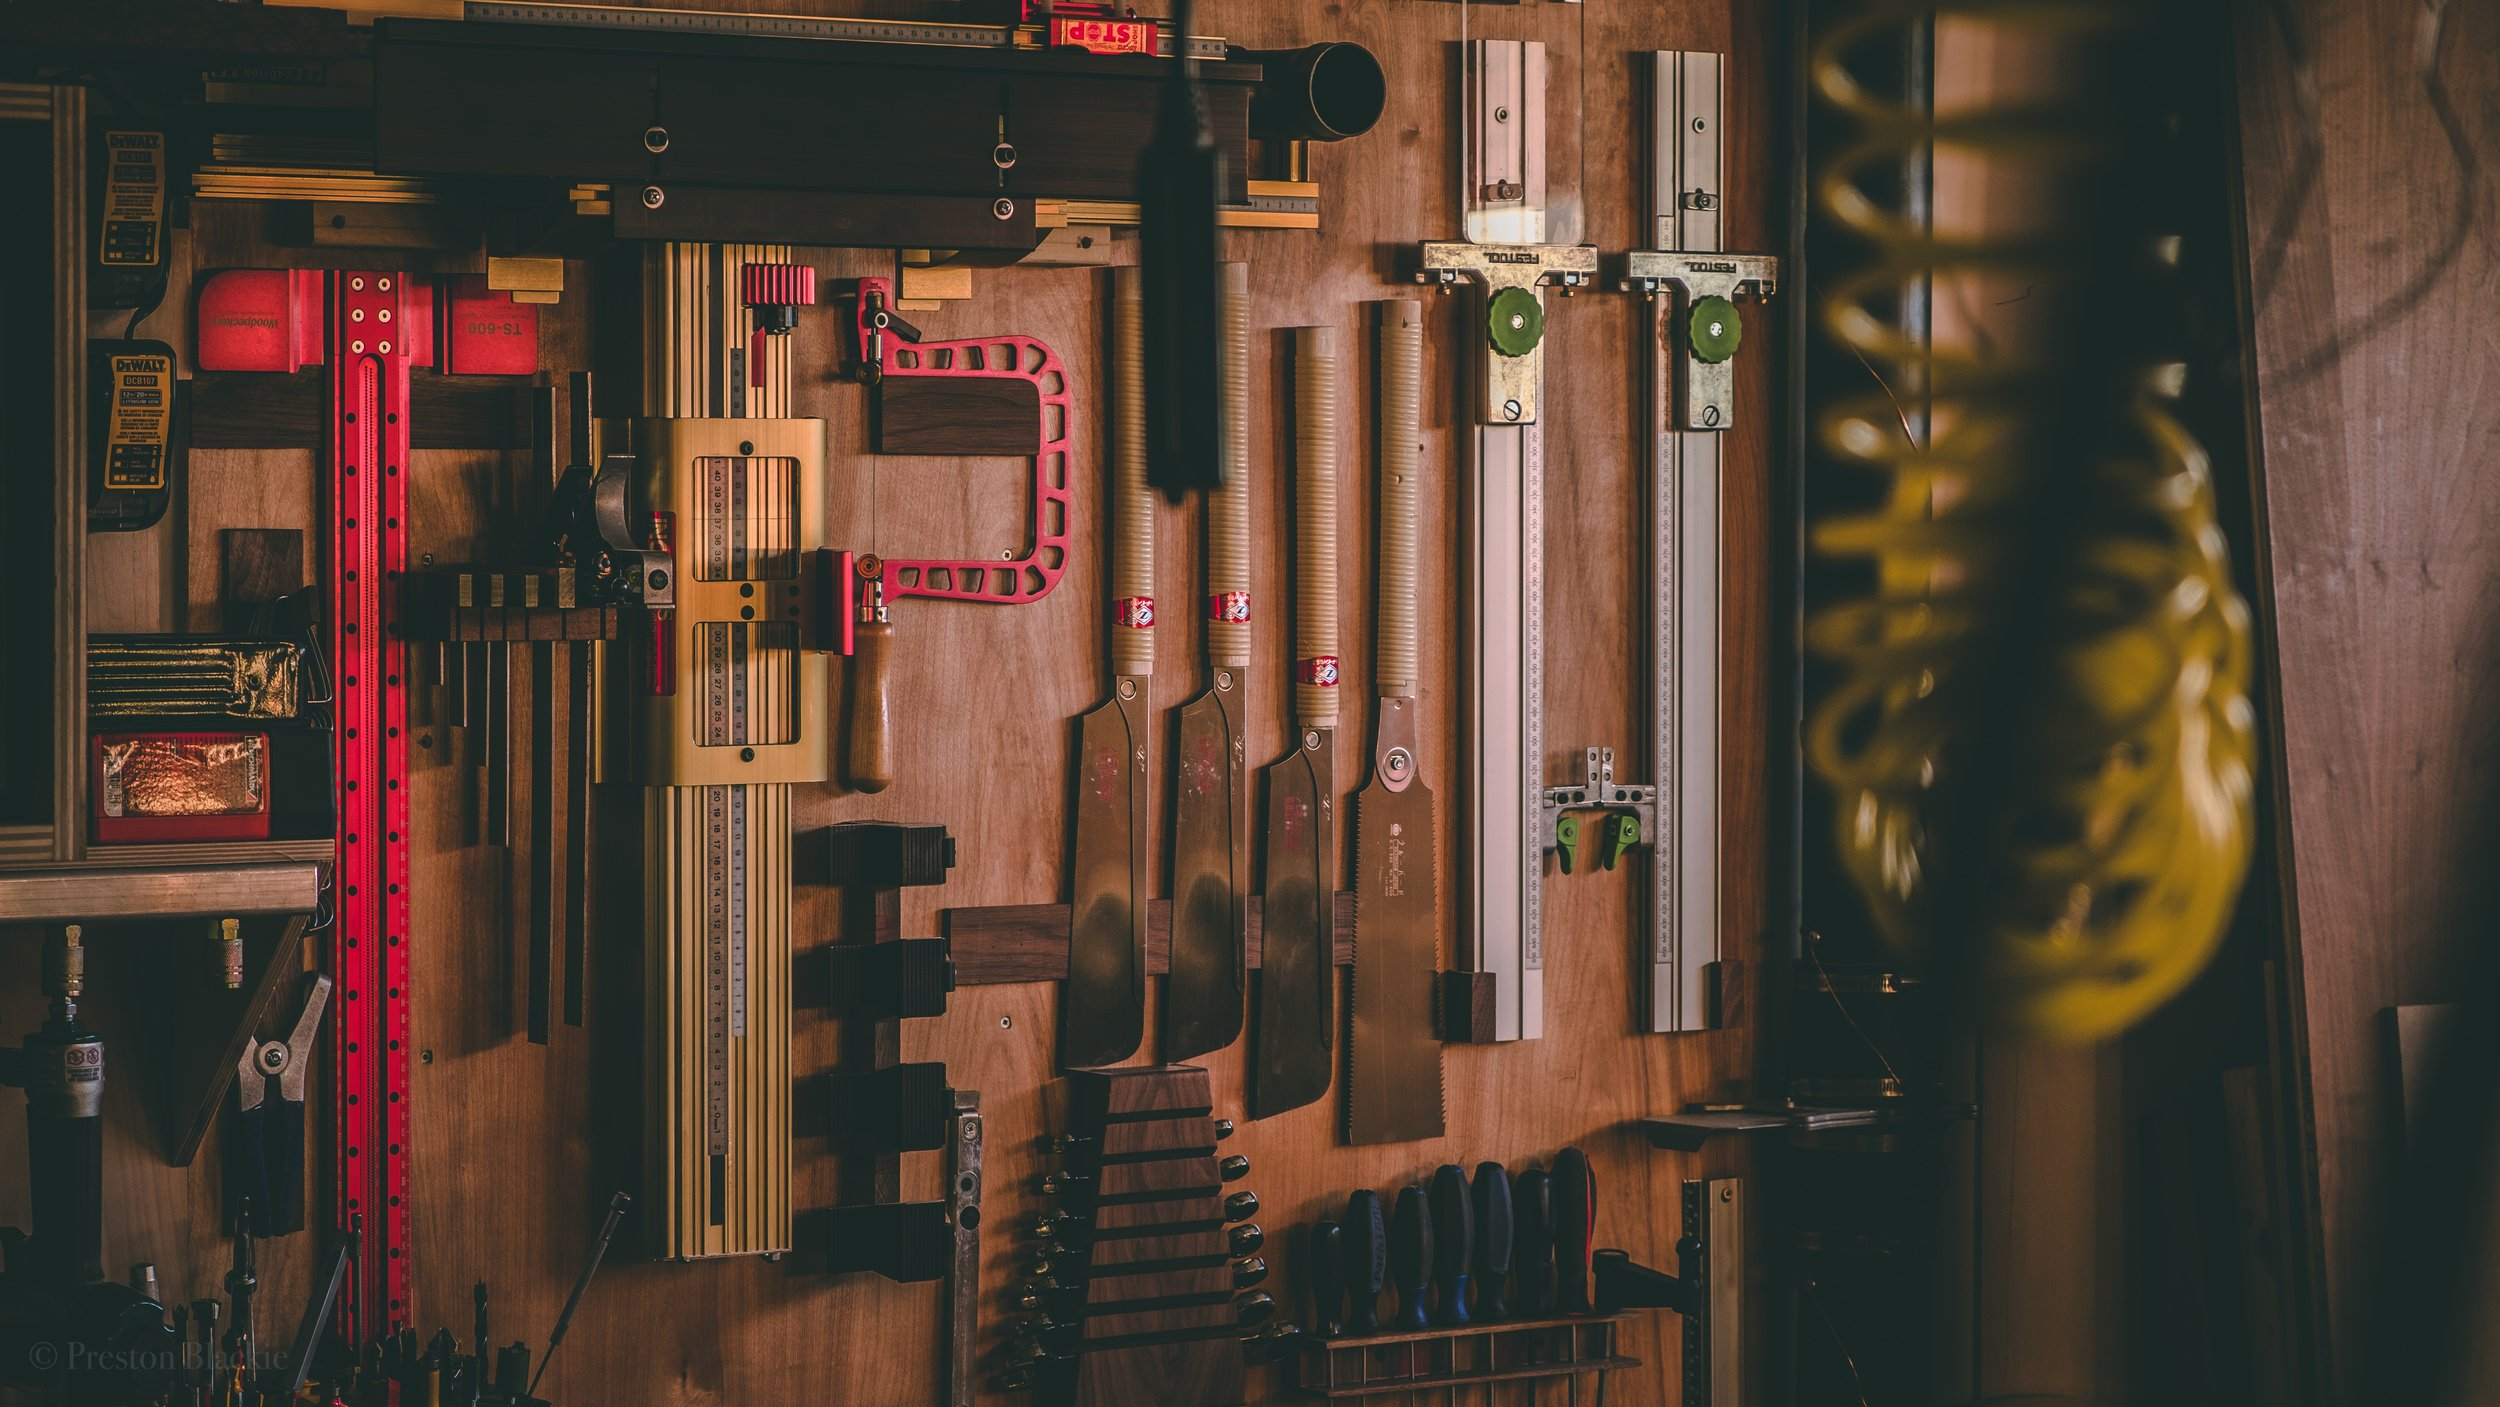 Tools…. - Lets face it we all love tools, you wouldn't be here if you didn't appreciate nice tools just a little bit. Here are affiliate links to some of my favourite and most used tools in my shop, You likely have seen these tools front and centre in many of my videos. Check them out for your self and help support the channel all while feeding your own tool addiction….